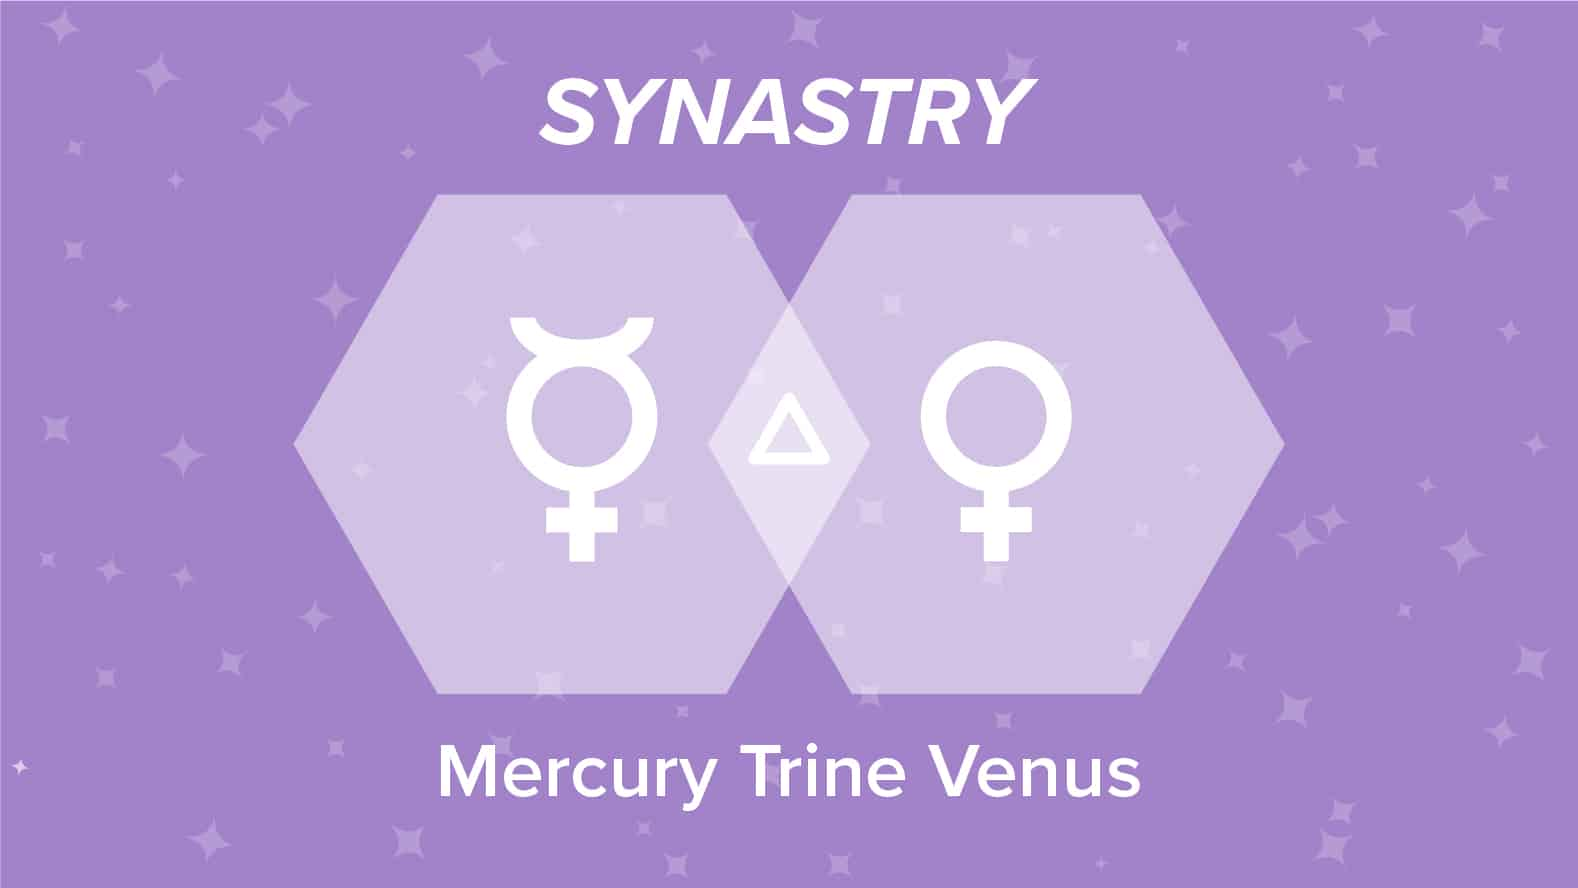 Mercury Trine Venus Synastry: Relationships and Friendships Explained